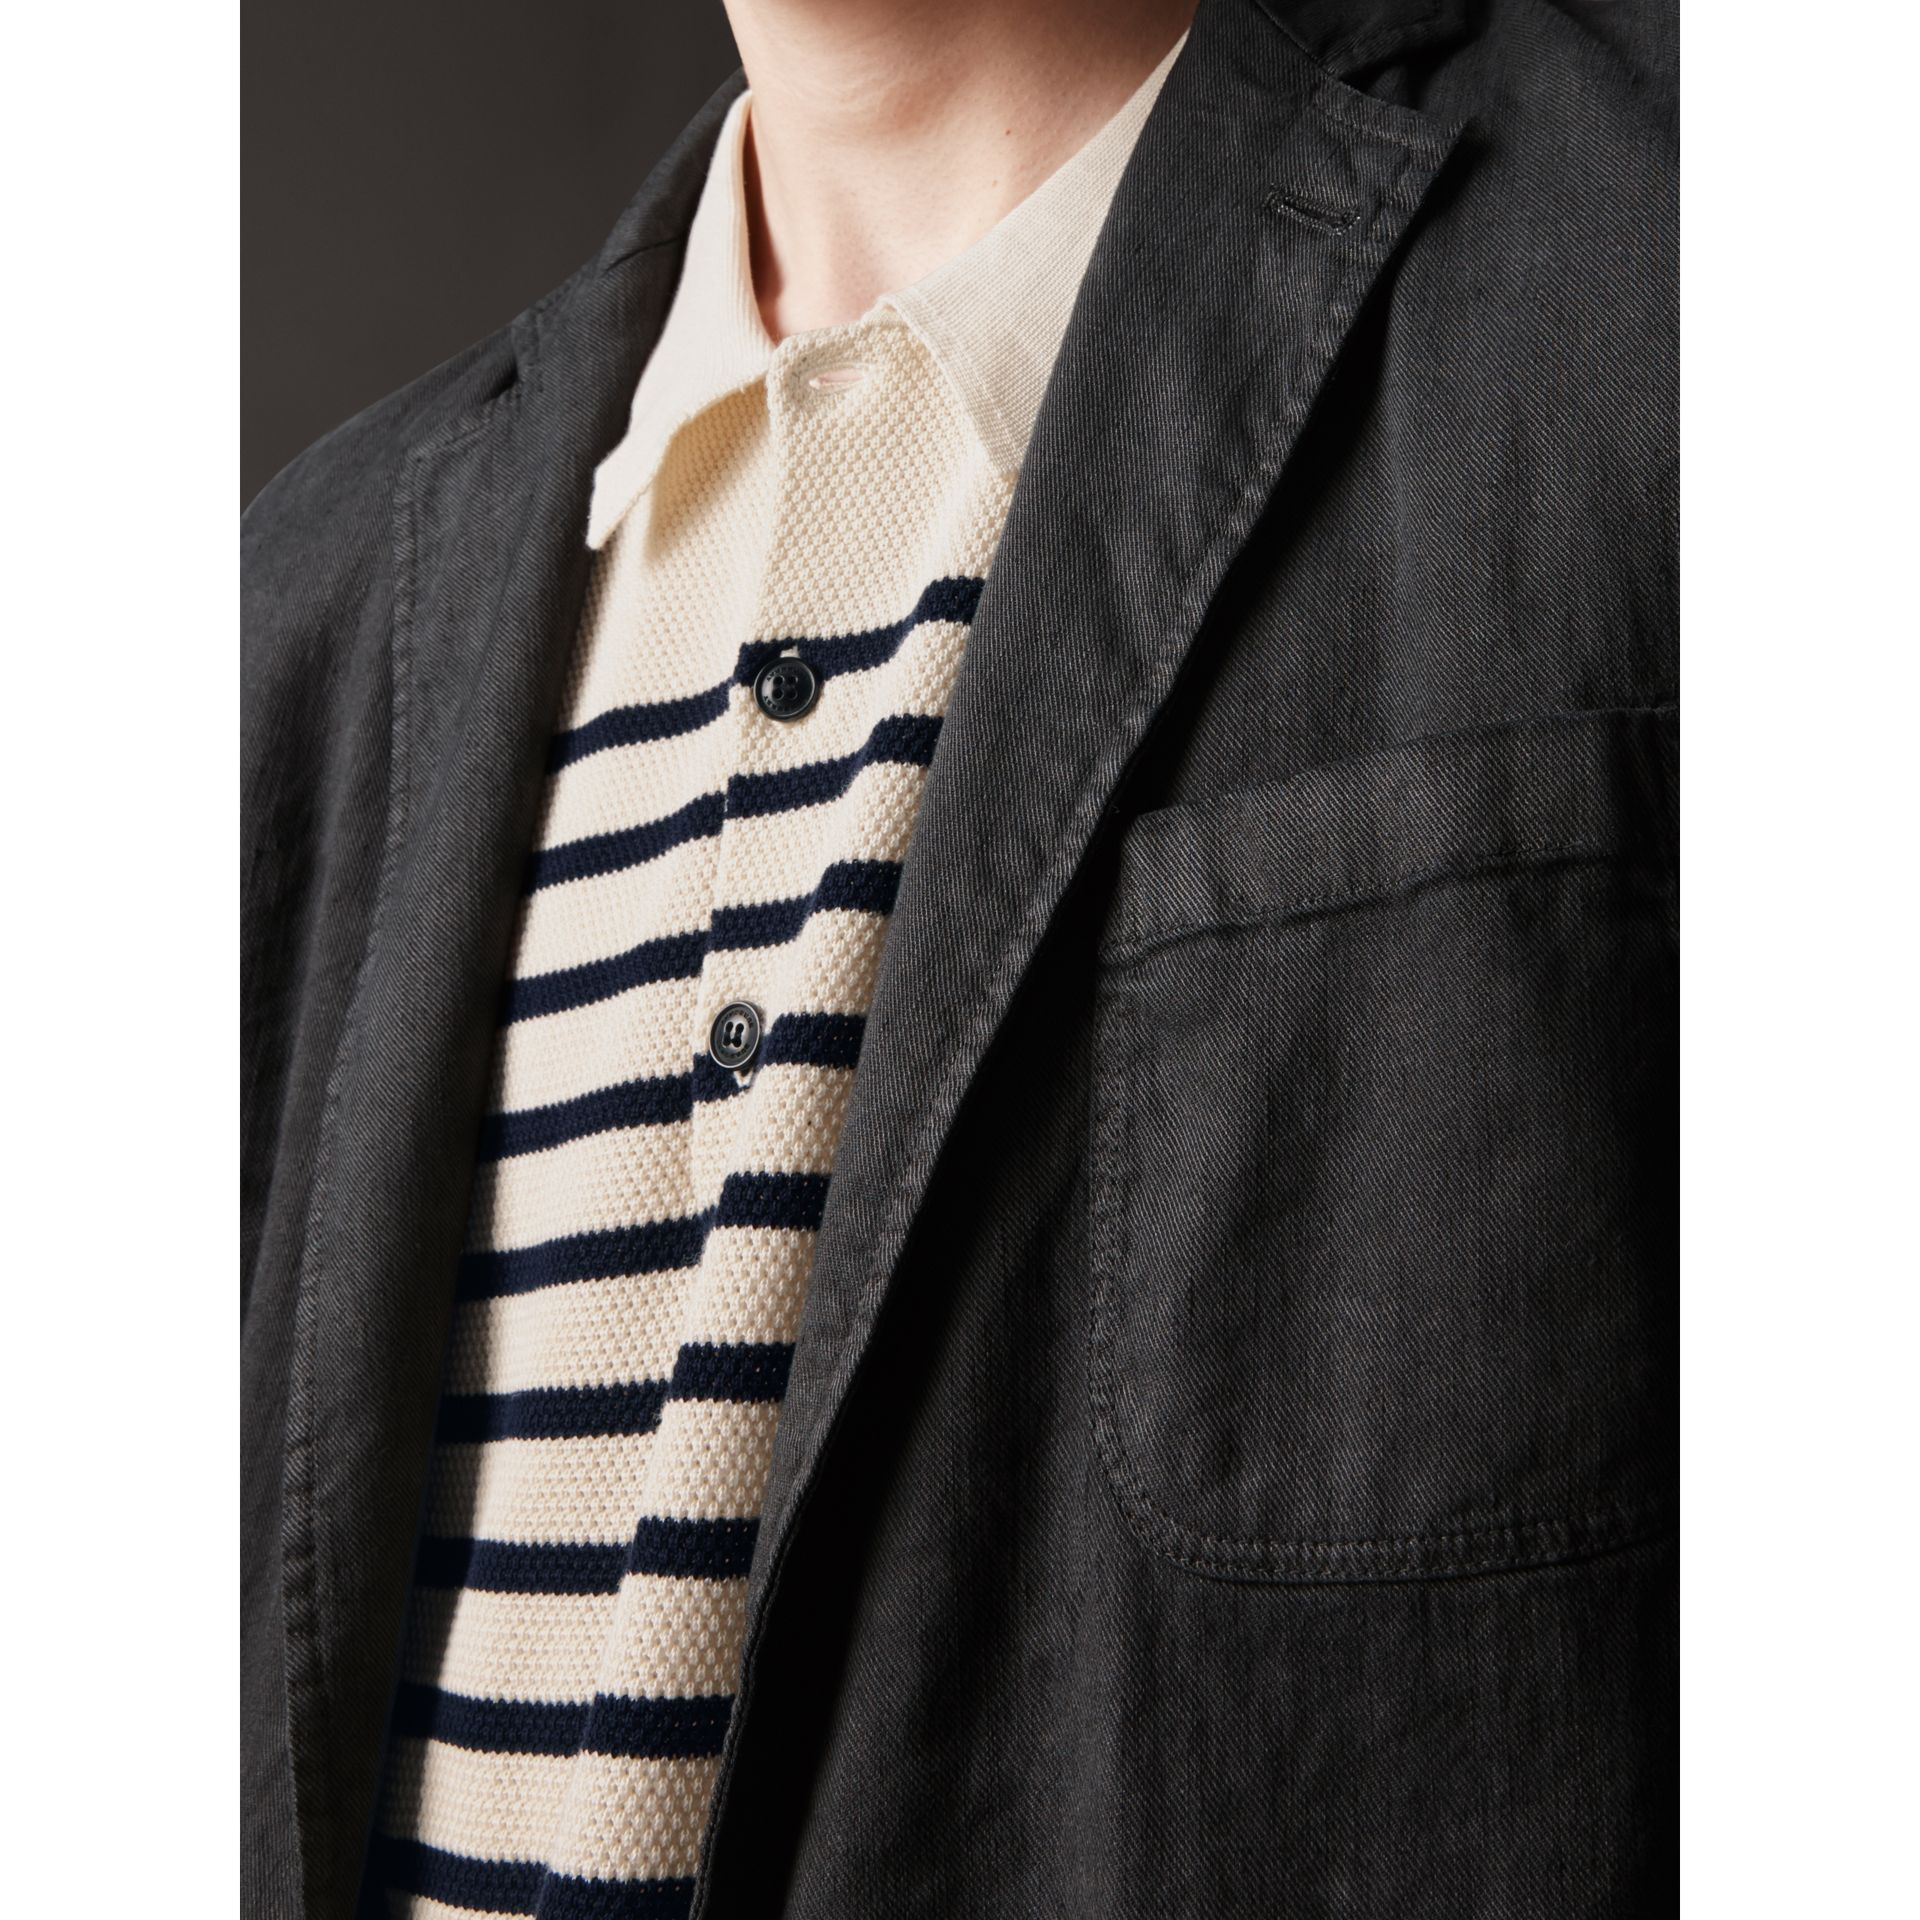 Slim Fit Linen Cotton Tailored Jacket in Dark Charcoal - Men | Burberry - gallery image 1